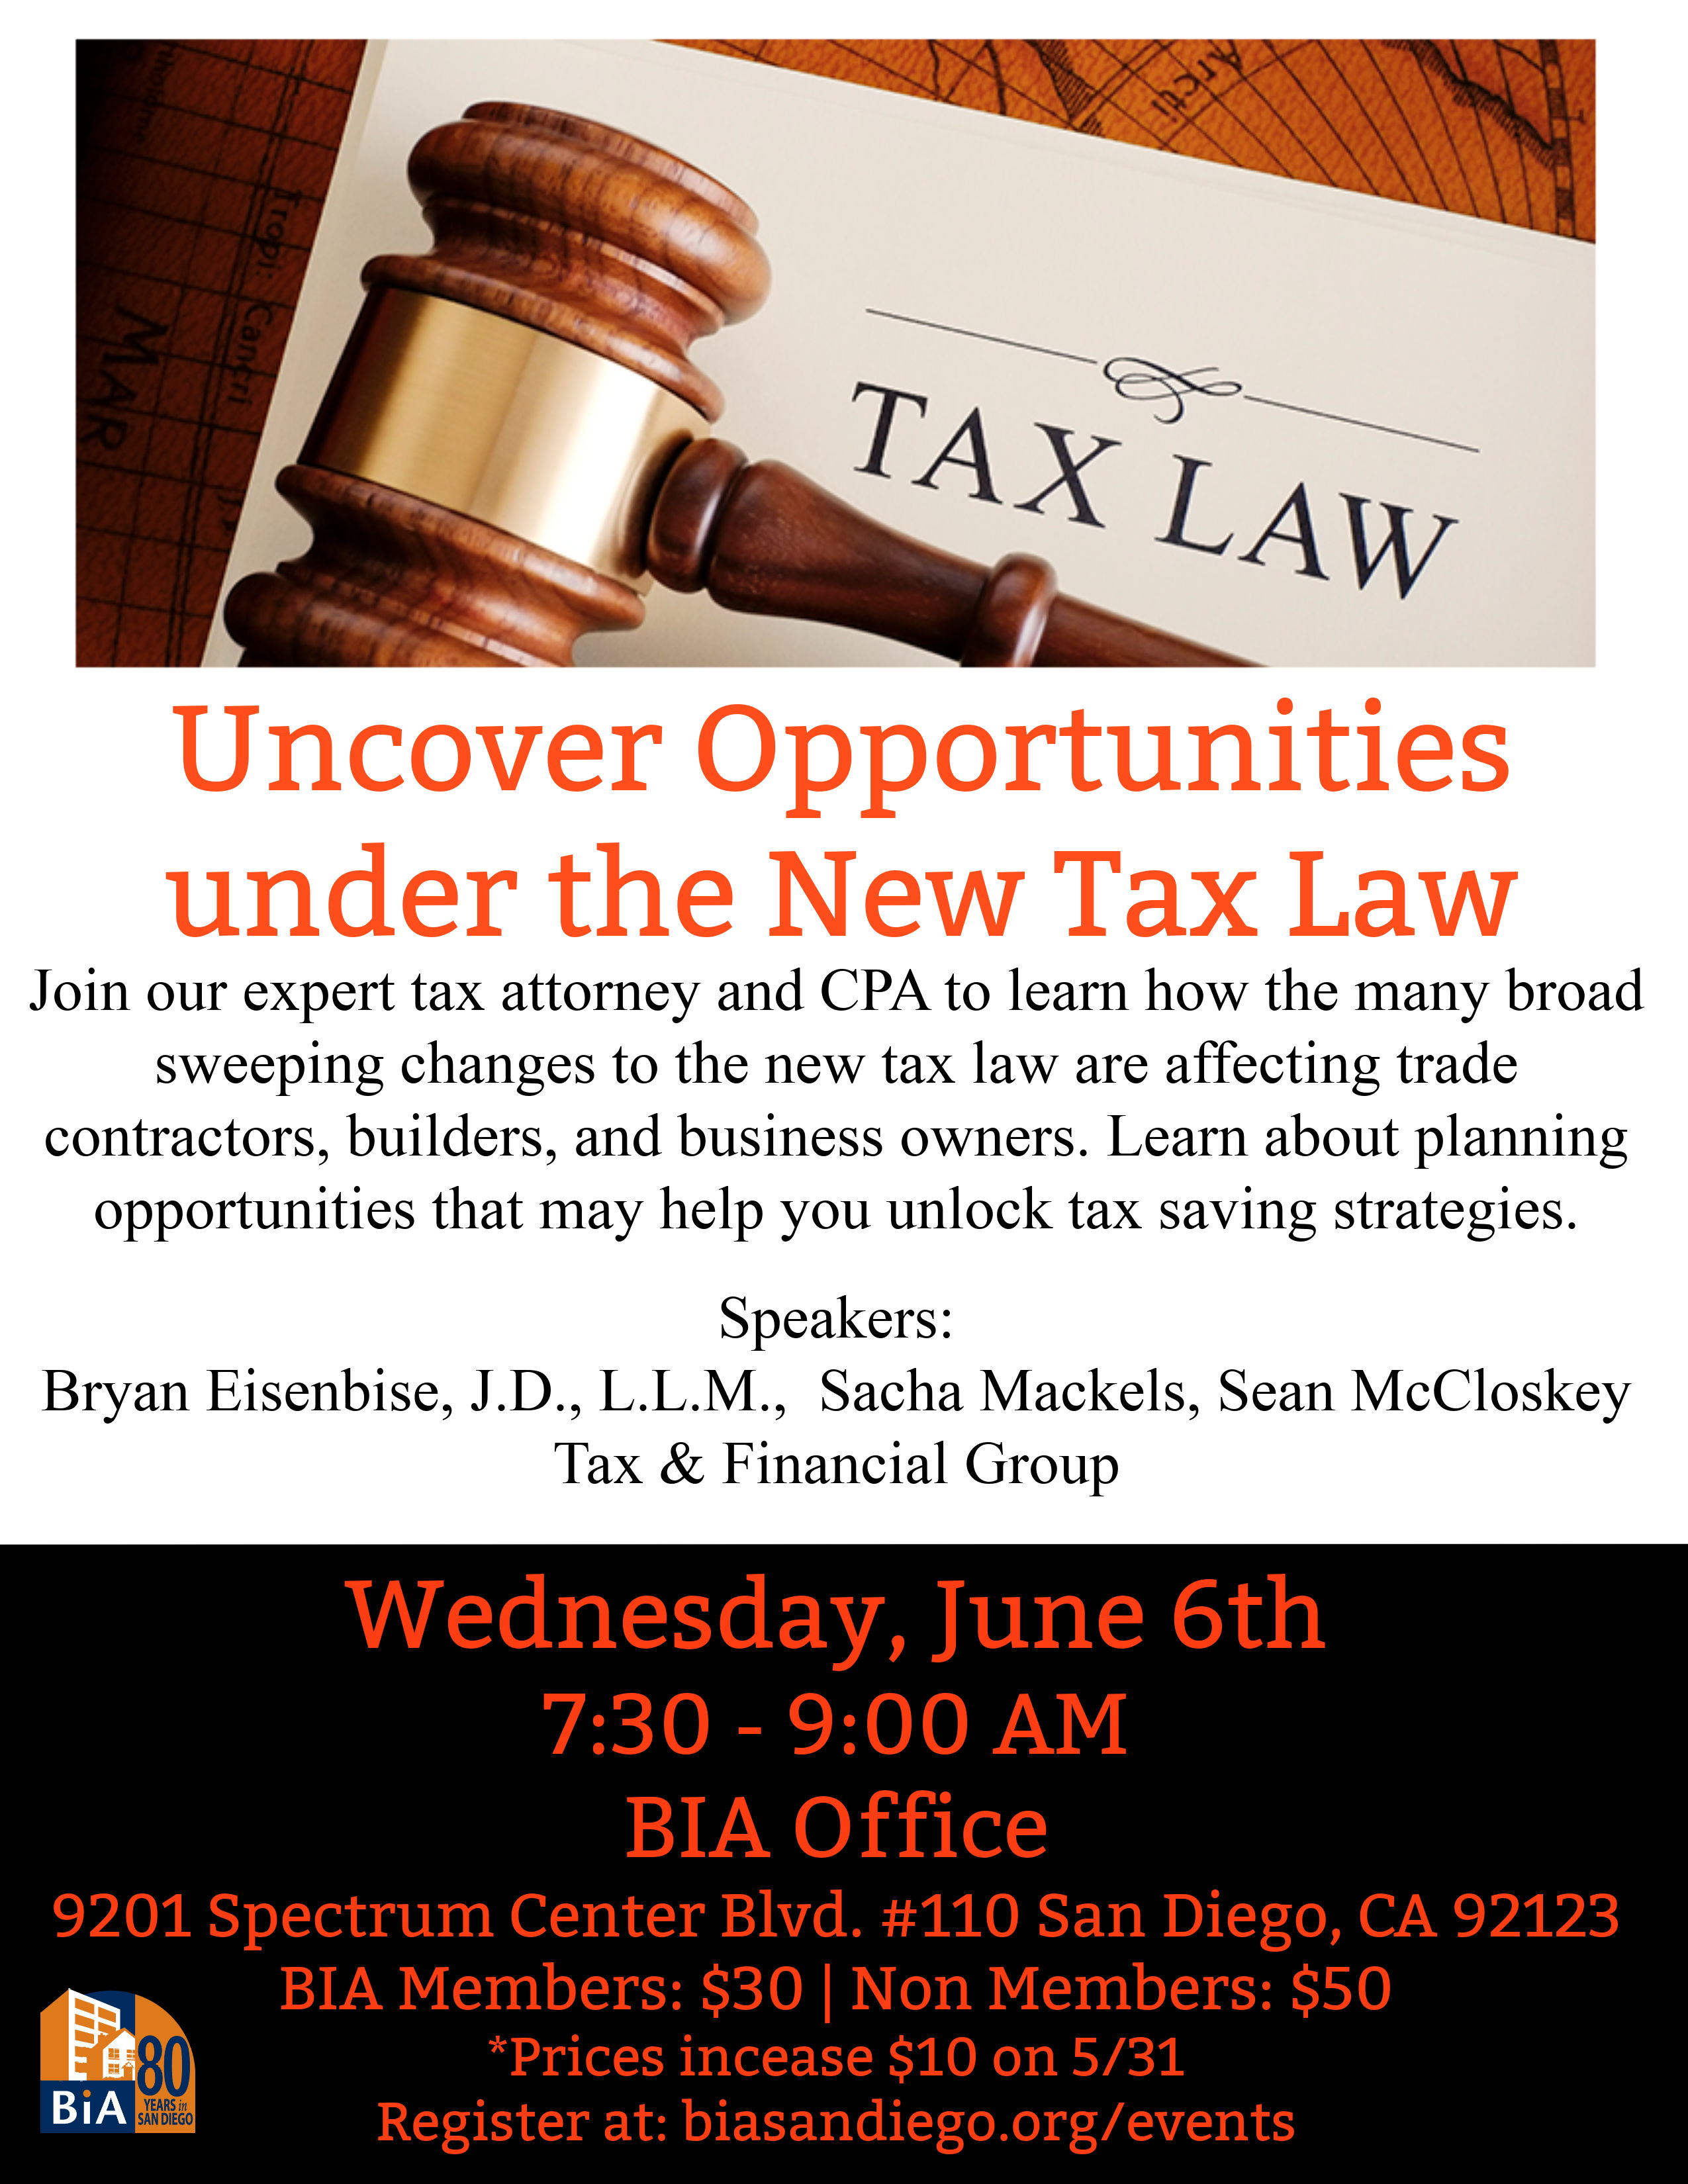 Uncover Opportunities under the New Tax Law Seminar – Building ...